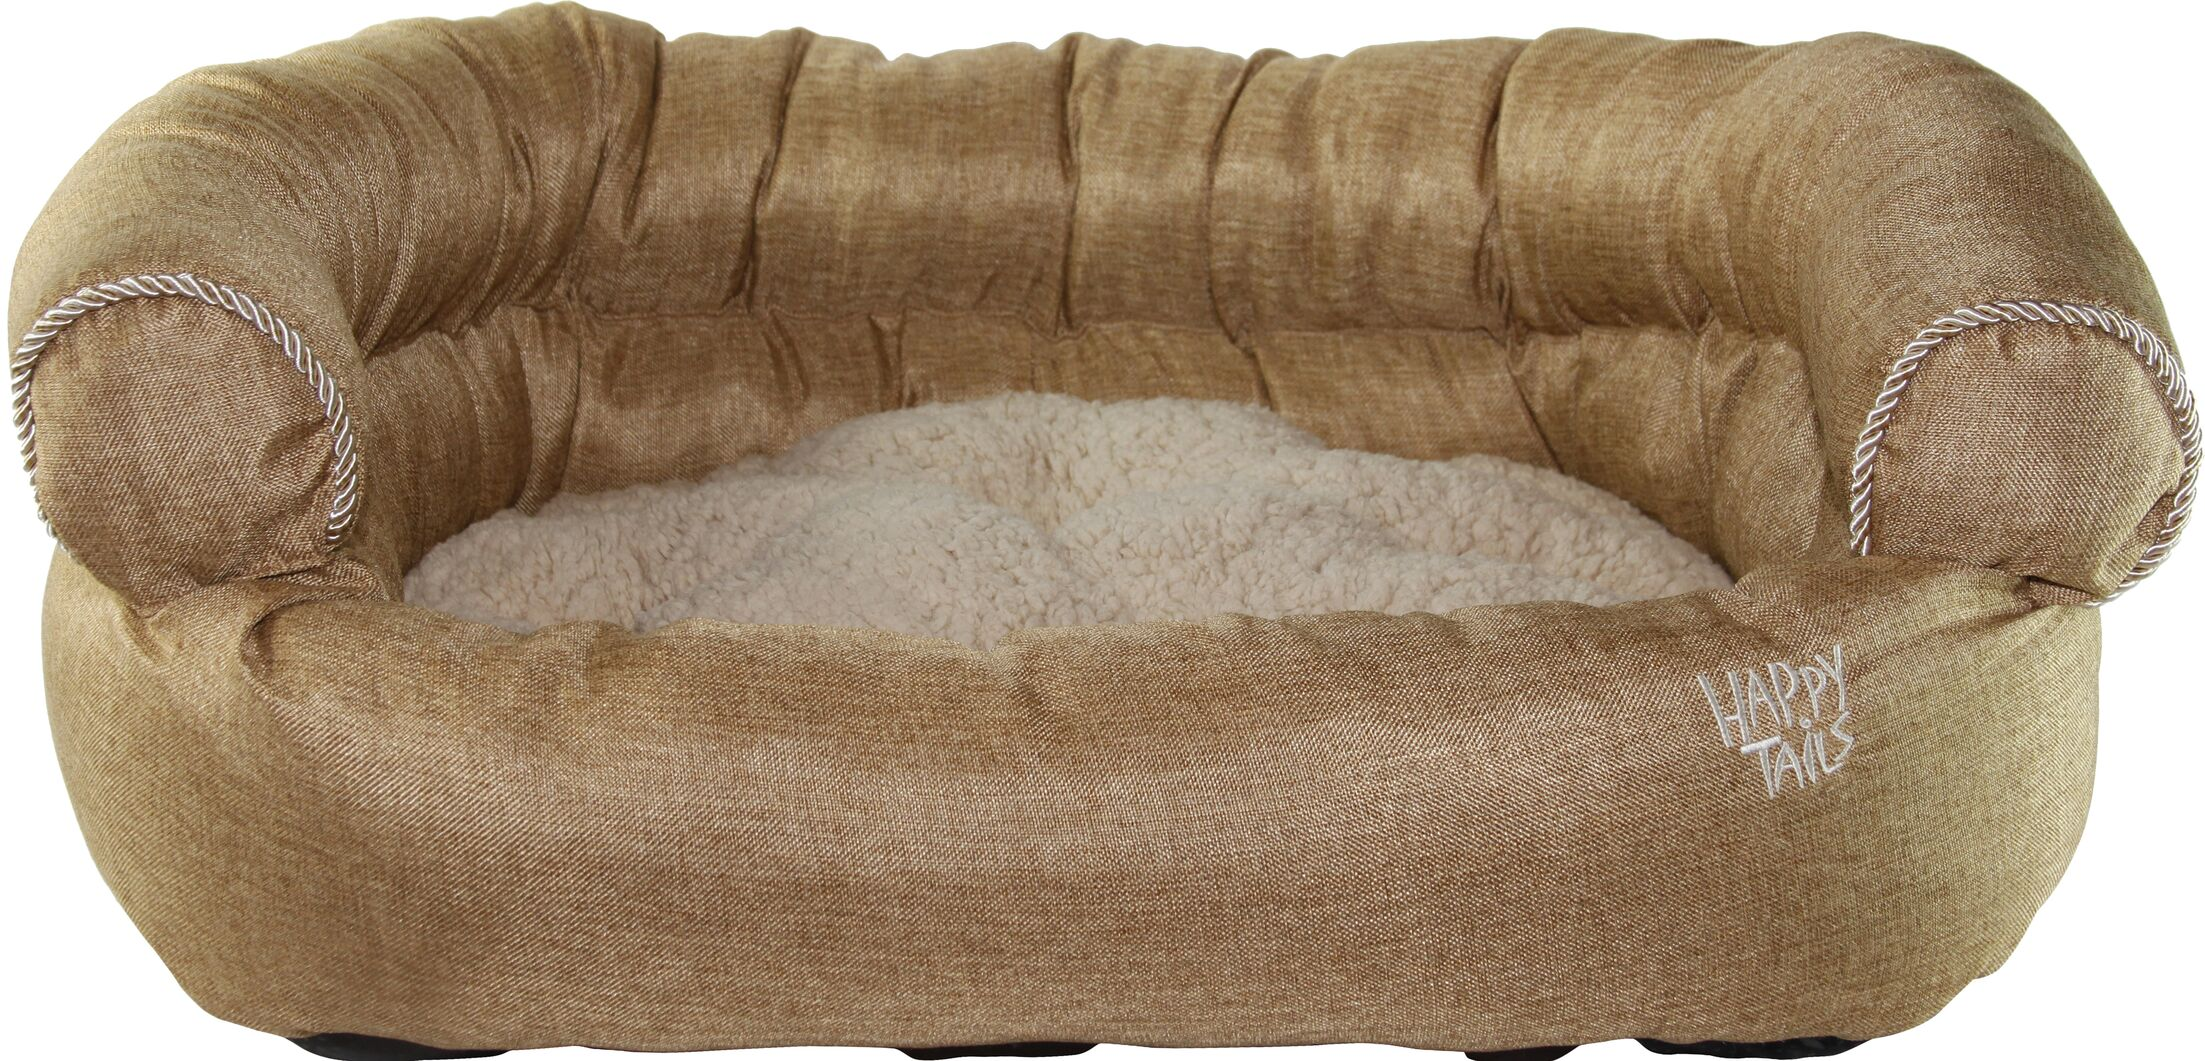 Luxurious Faux Linen Dog Sofa Color: Khaki